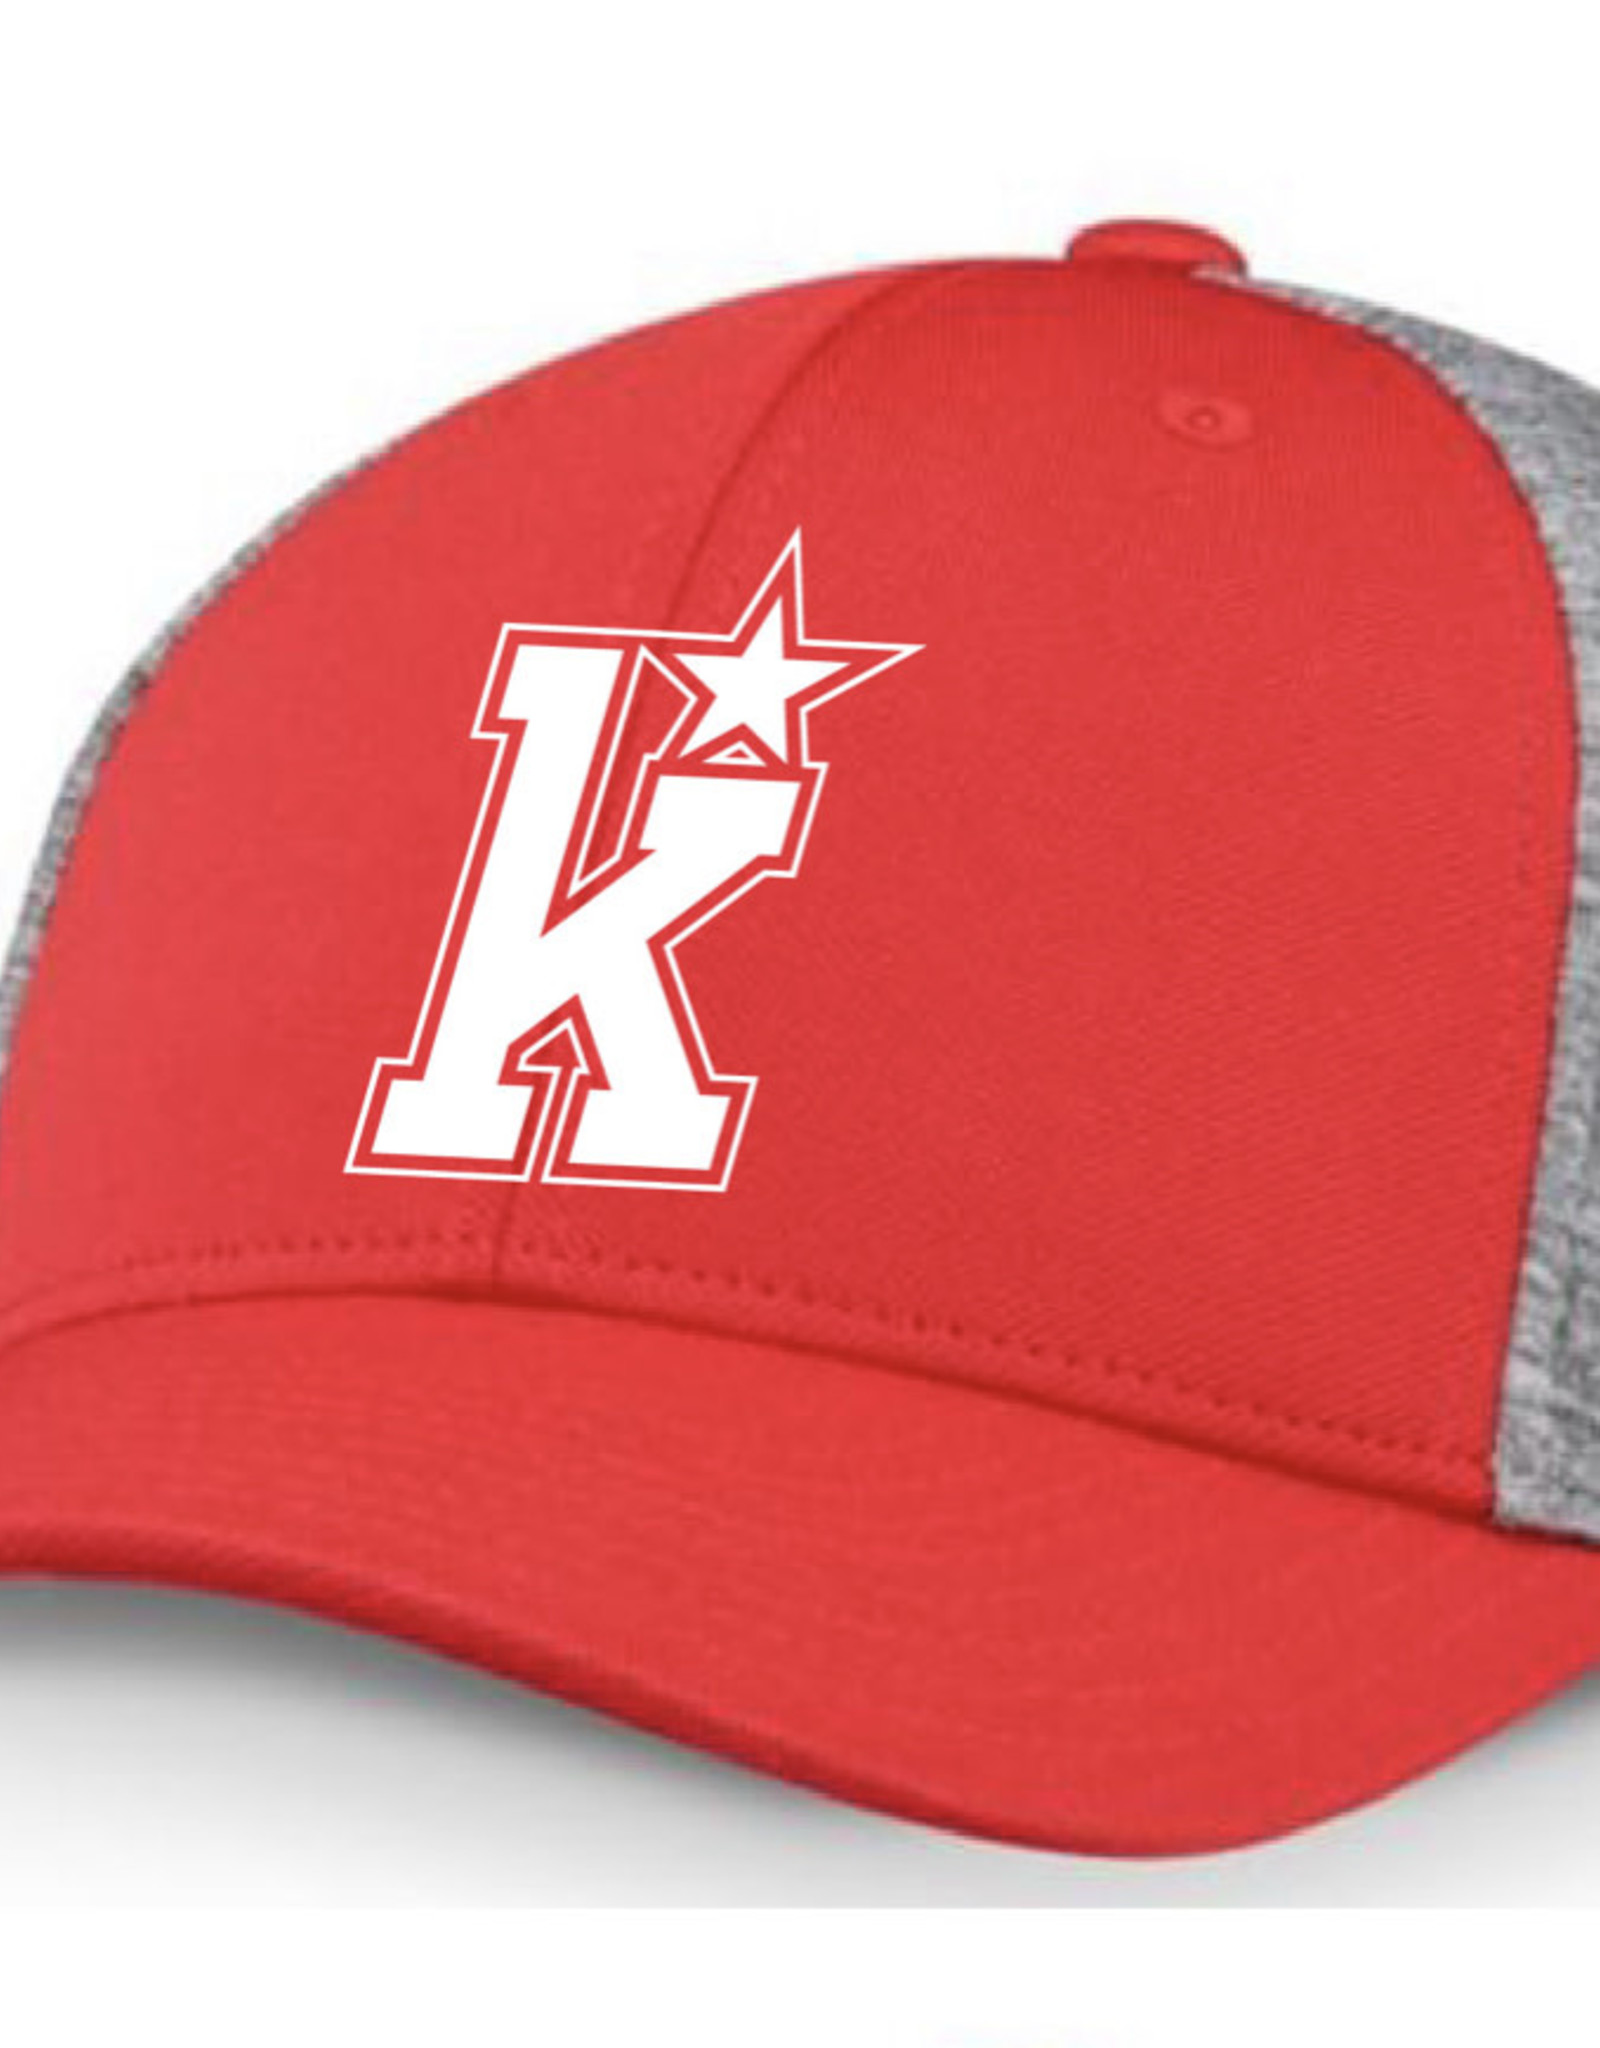 CCM Kirkwood CCM Red/Grey Fitted Hat (S/M) ADULT